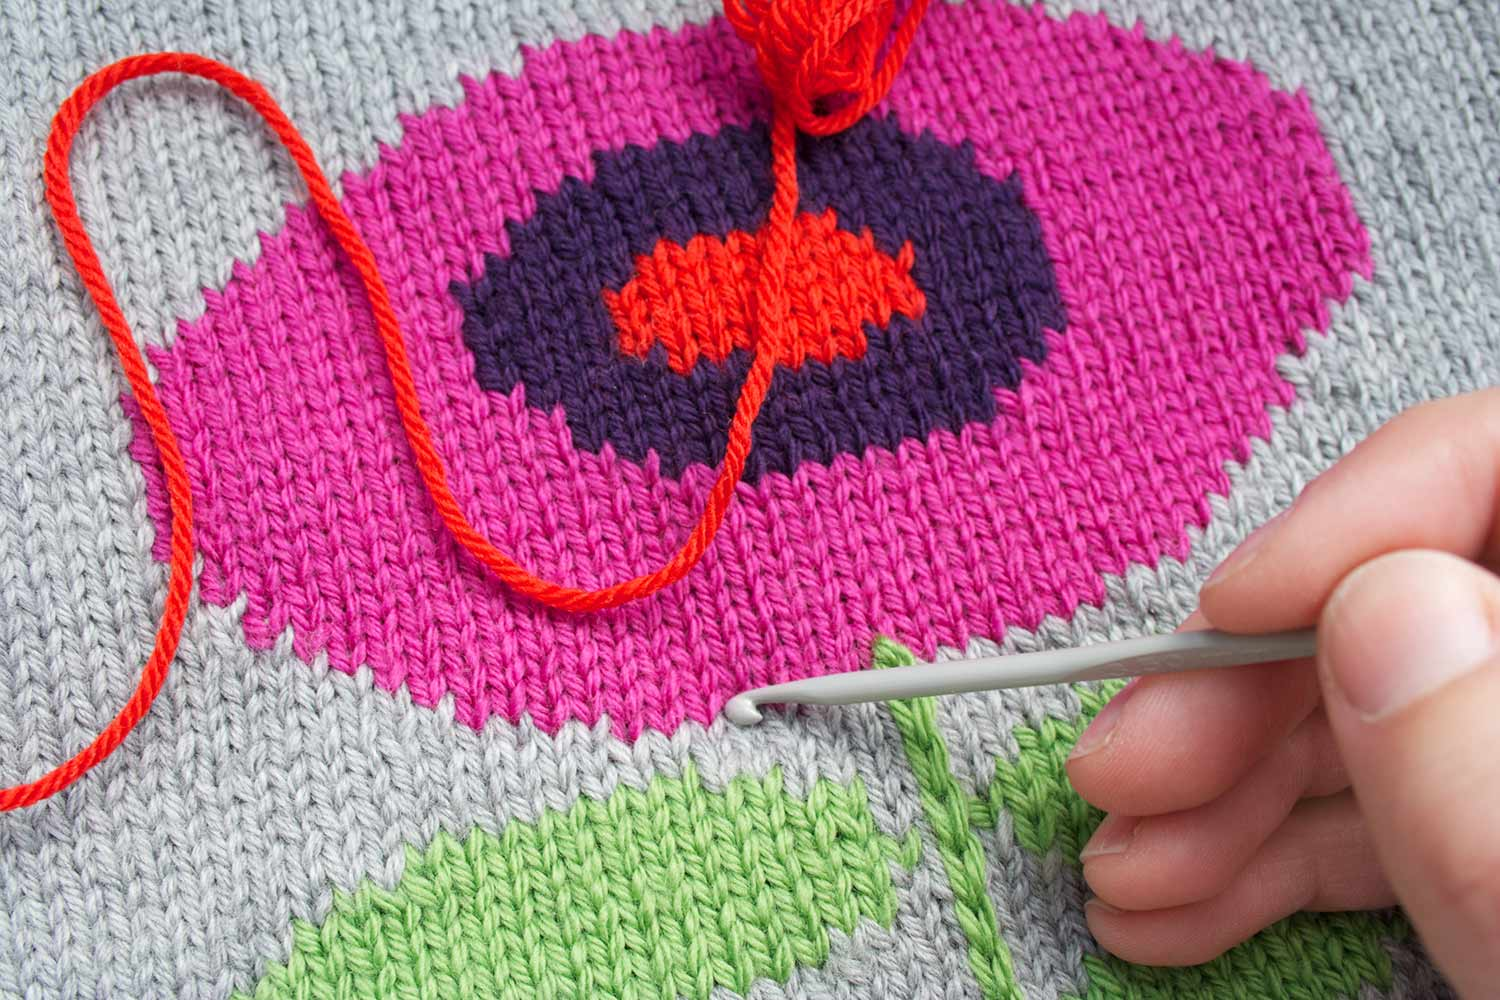 Crochet hook held in right hand and pointing to a location on the outside of the flower motif where the hook will be inserted through the fabric.